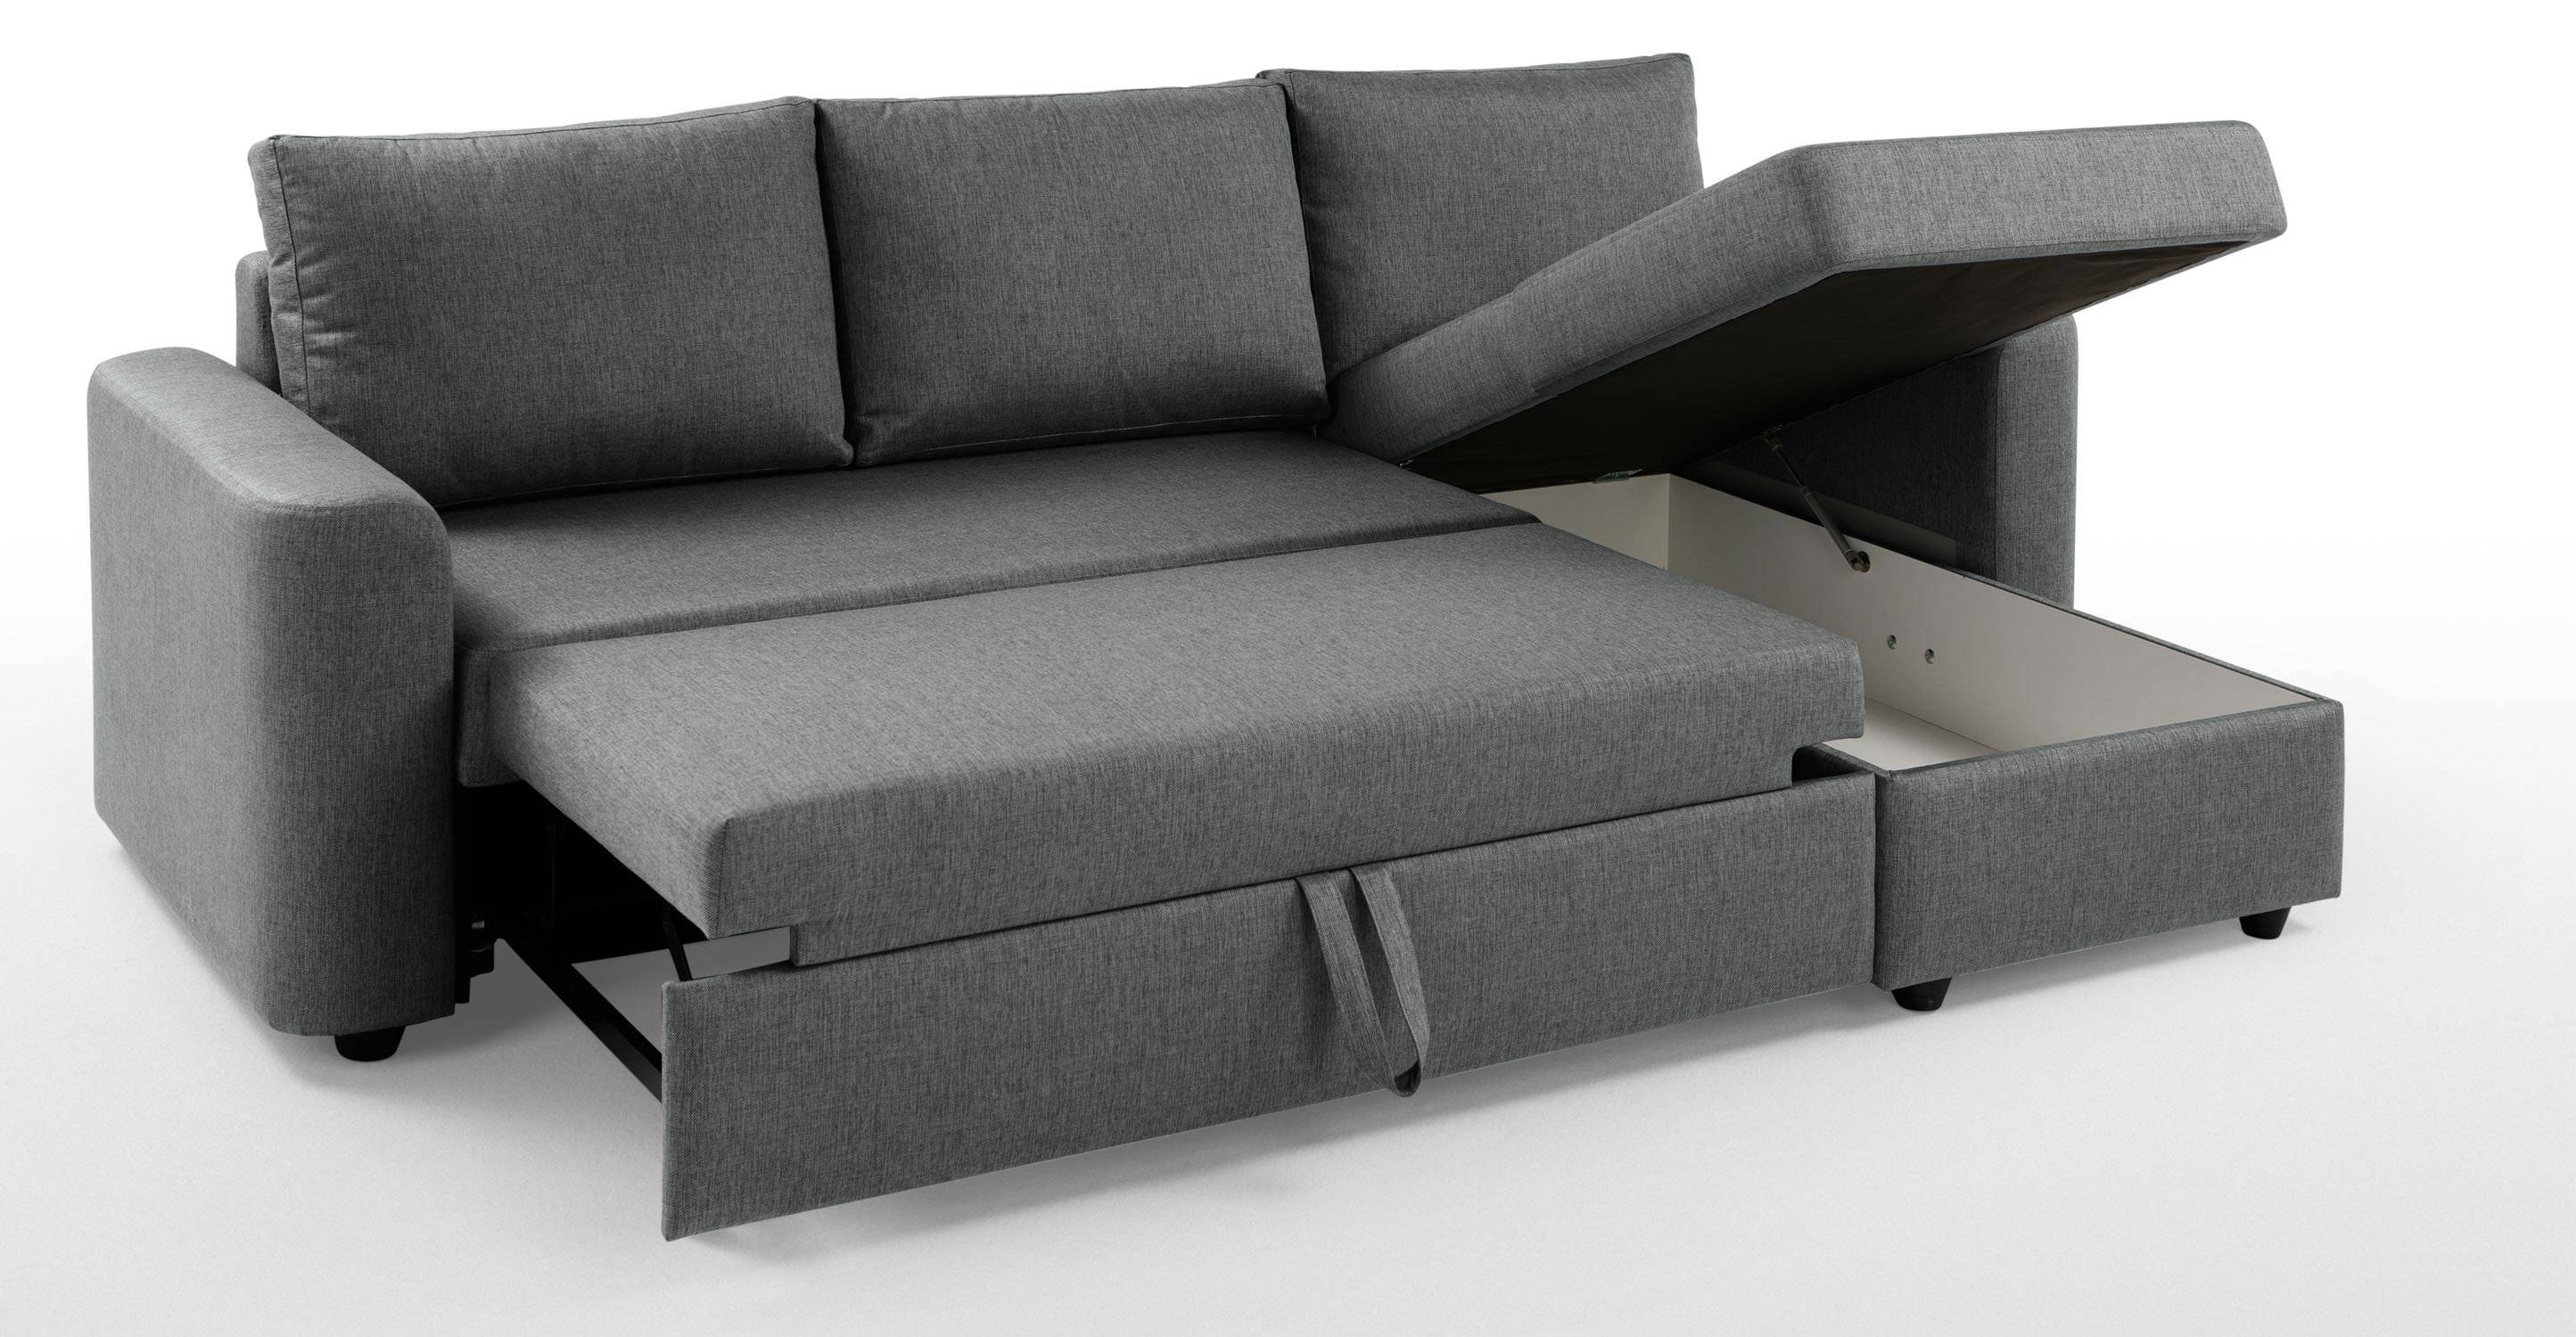 Corner Sofa Bed With Storage London | Centerfieldbar Inside Sofa Beds With Storage Chaise (View 3 of 15)